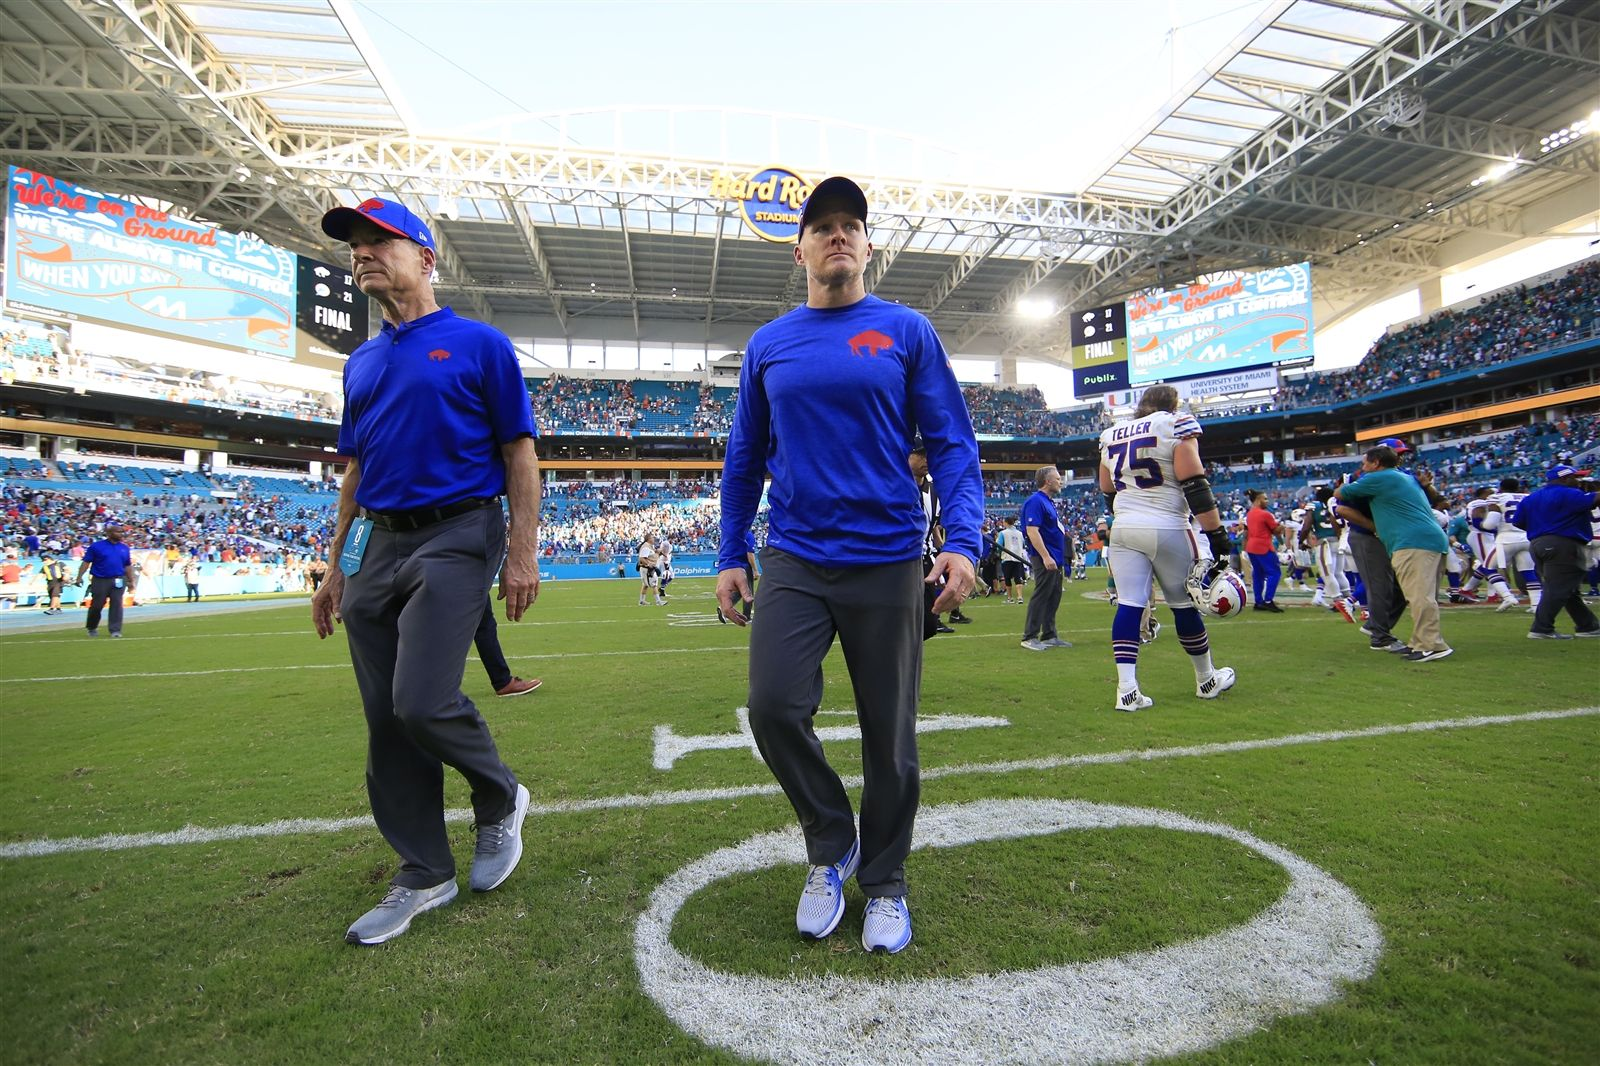 Bills coach Sean McDermott walks off the field after loosing to the Dolphins at Hard Rock Stadium.